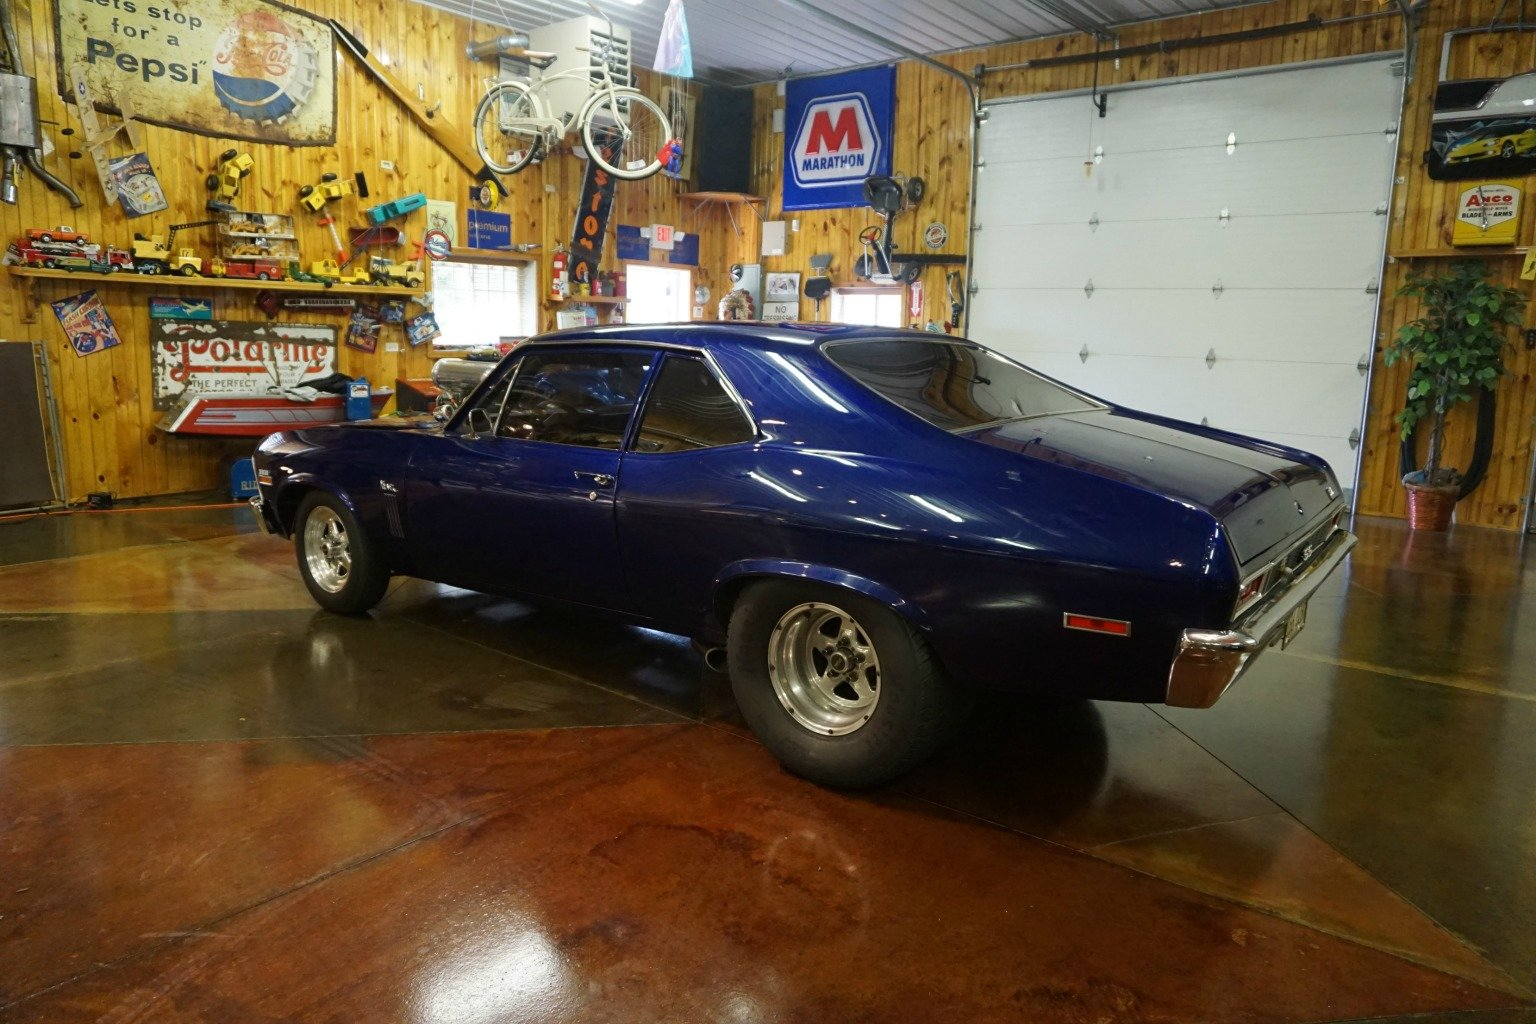 1968 Chevrolet Nova Pro-Street (Pell Lake, Wisconsin) For Sale (picture 3 of 6)